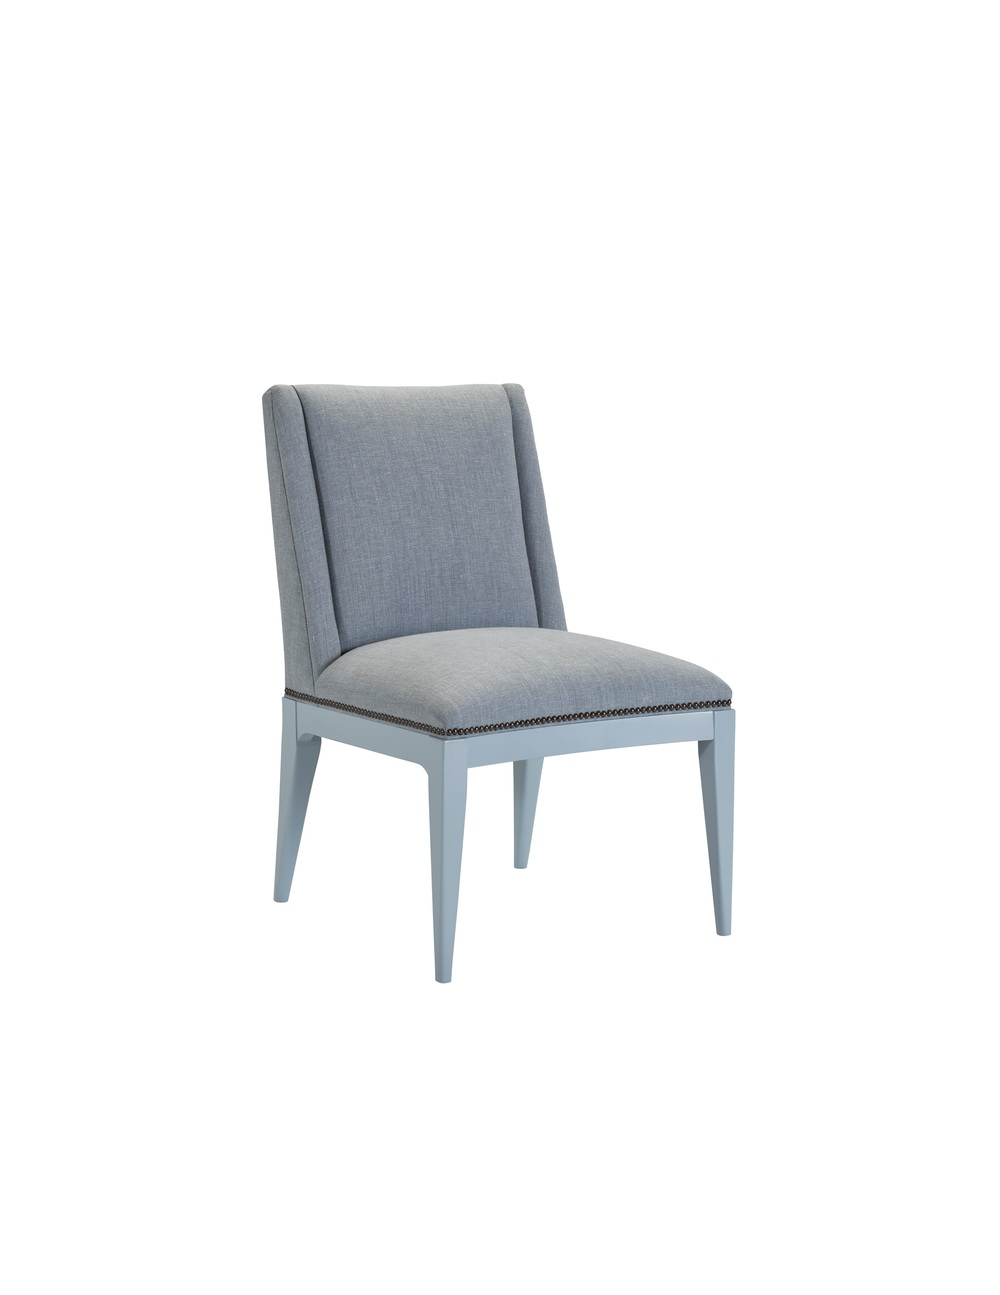 Hickory Chair - Tate Side Chair